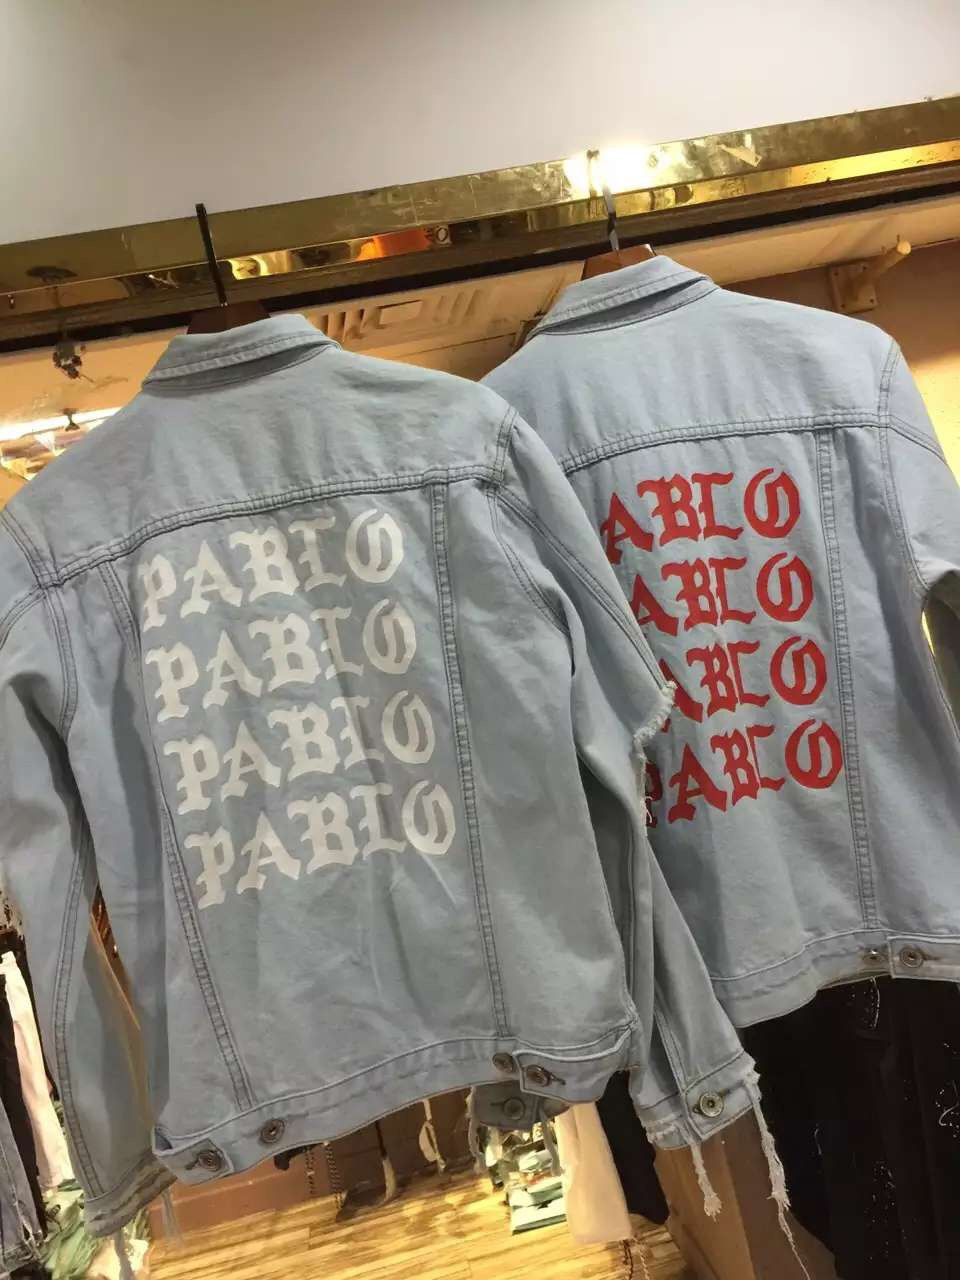 HTB1L76XNXXXXXa XFXXq6xXFXXXO - I Feel Like Pablo Denim Jacket Season 3 Kanye West Pablo Jeans Jacket PTC 03